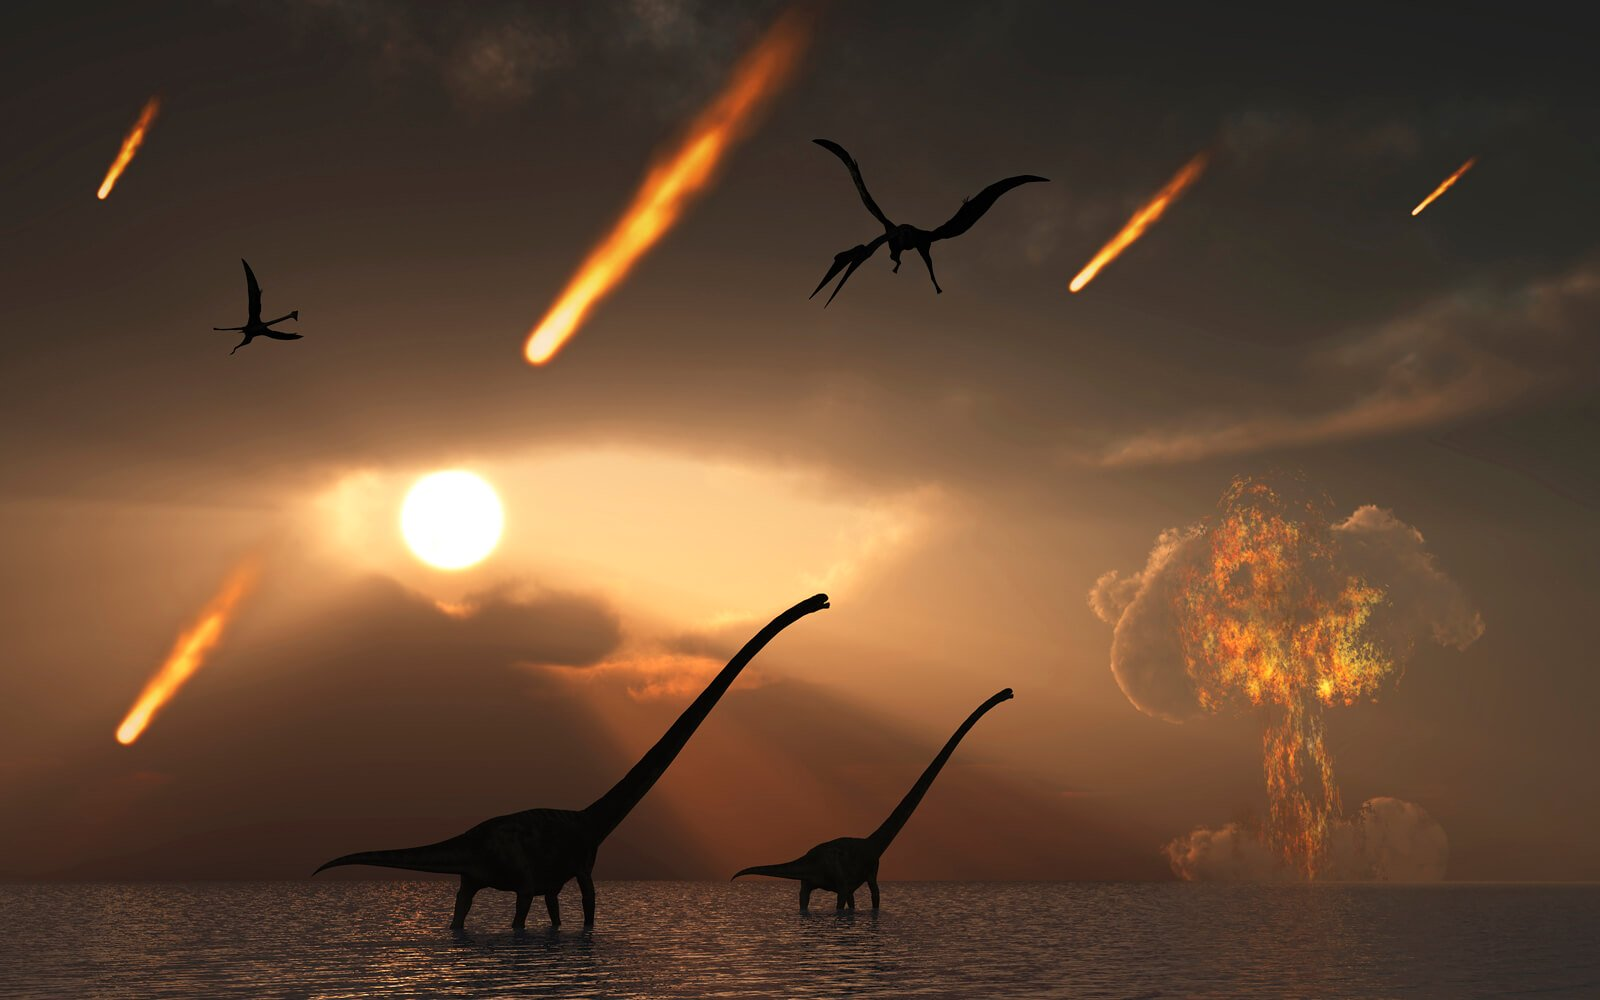 And yet the dinosaurs became extinct because of the impact of the Chicxulub asteroid, scientists have found